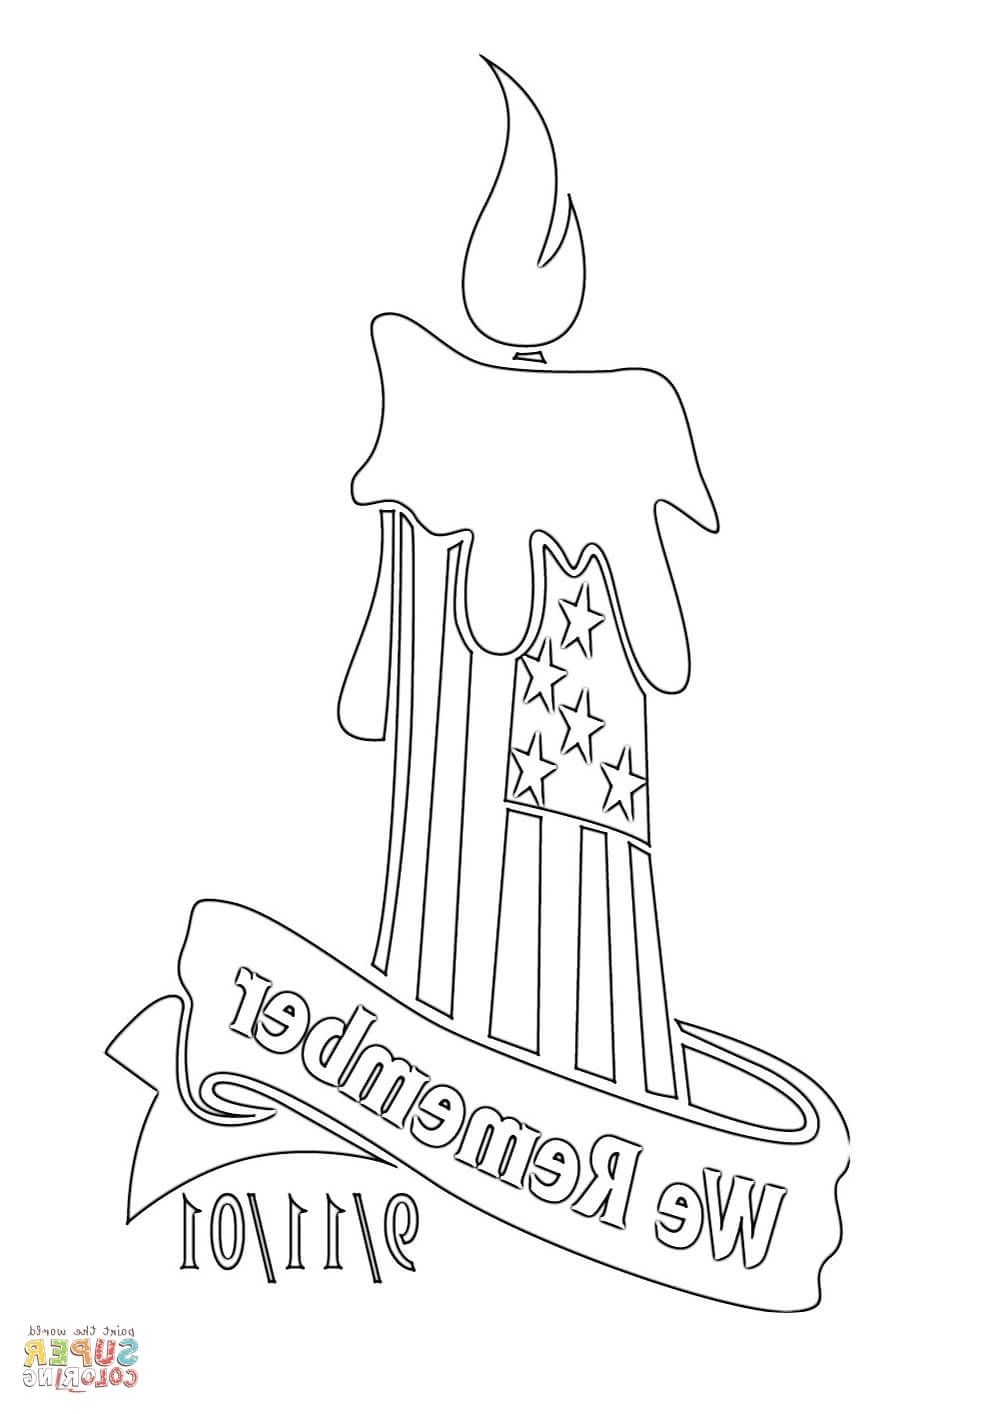 September 11 Coloring Pages Coloring Pages Pokemon Coloring Pages Crayola Coloring Pages